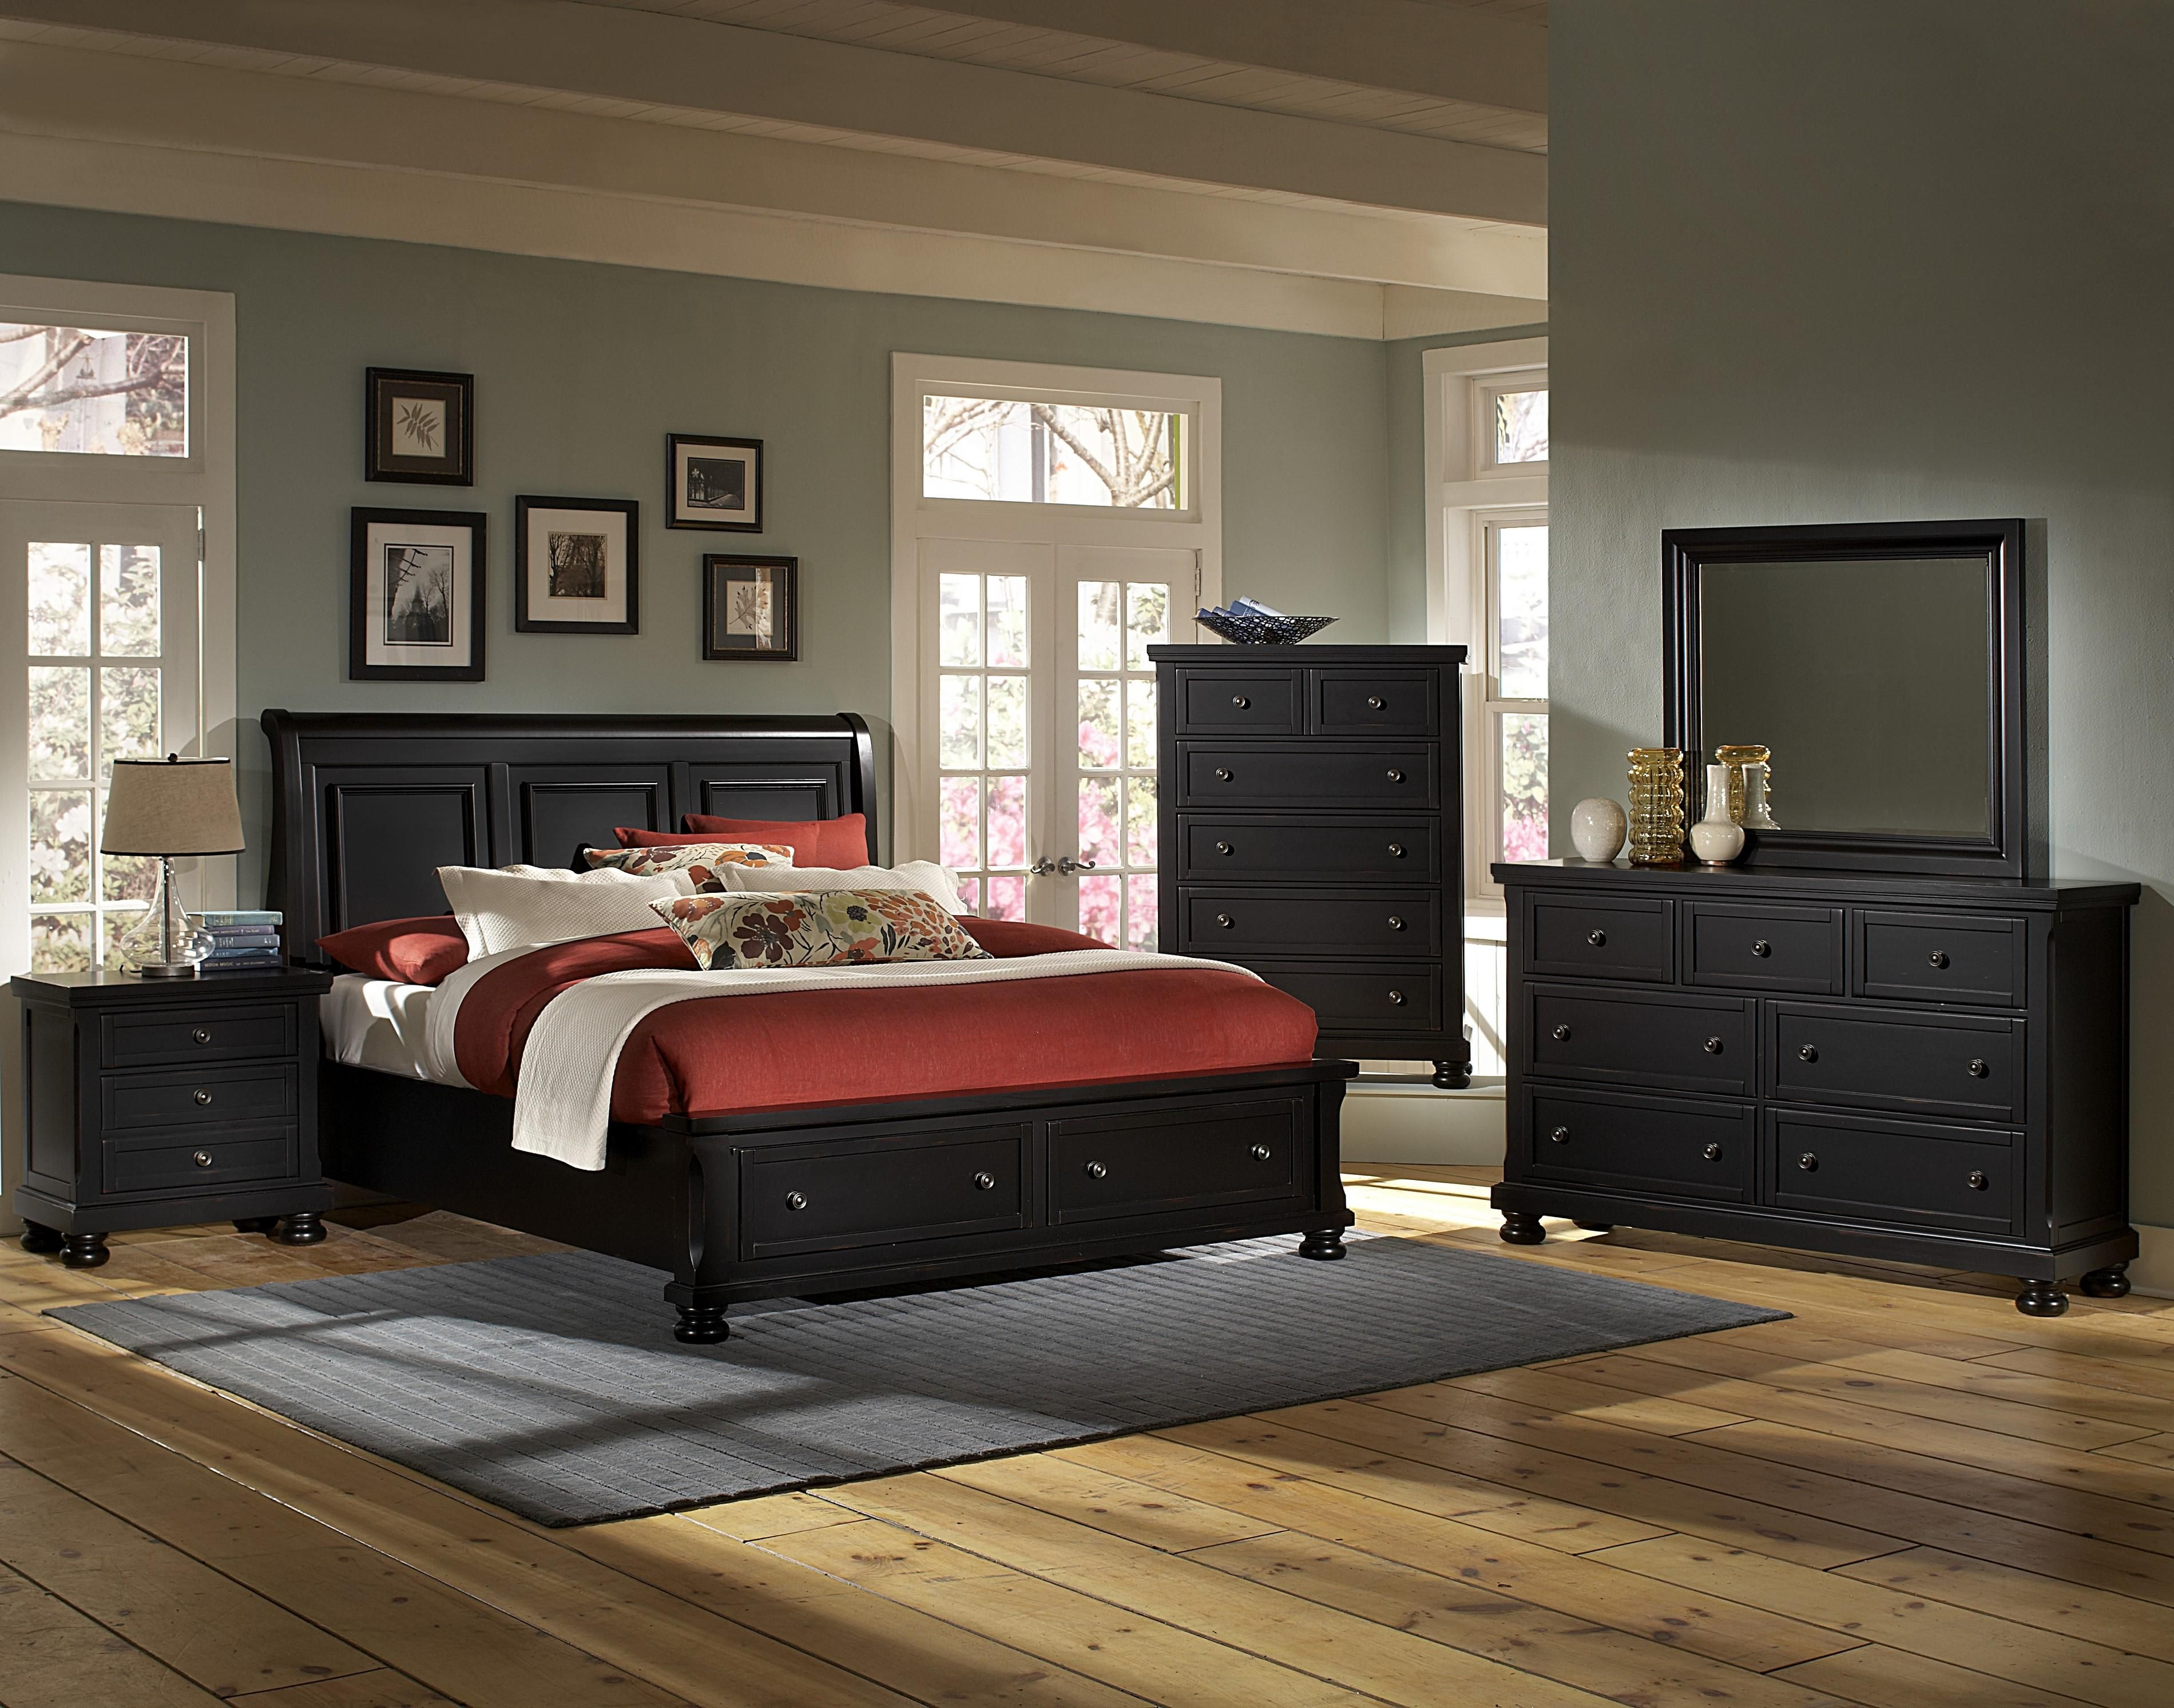 Reflections King Bedroom Group by Vaughan Bassett | Furniture for ...